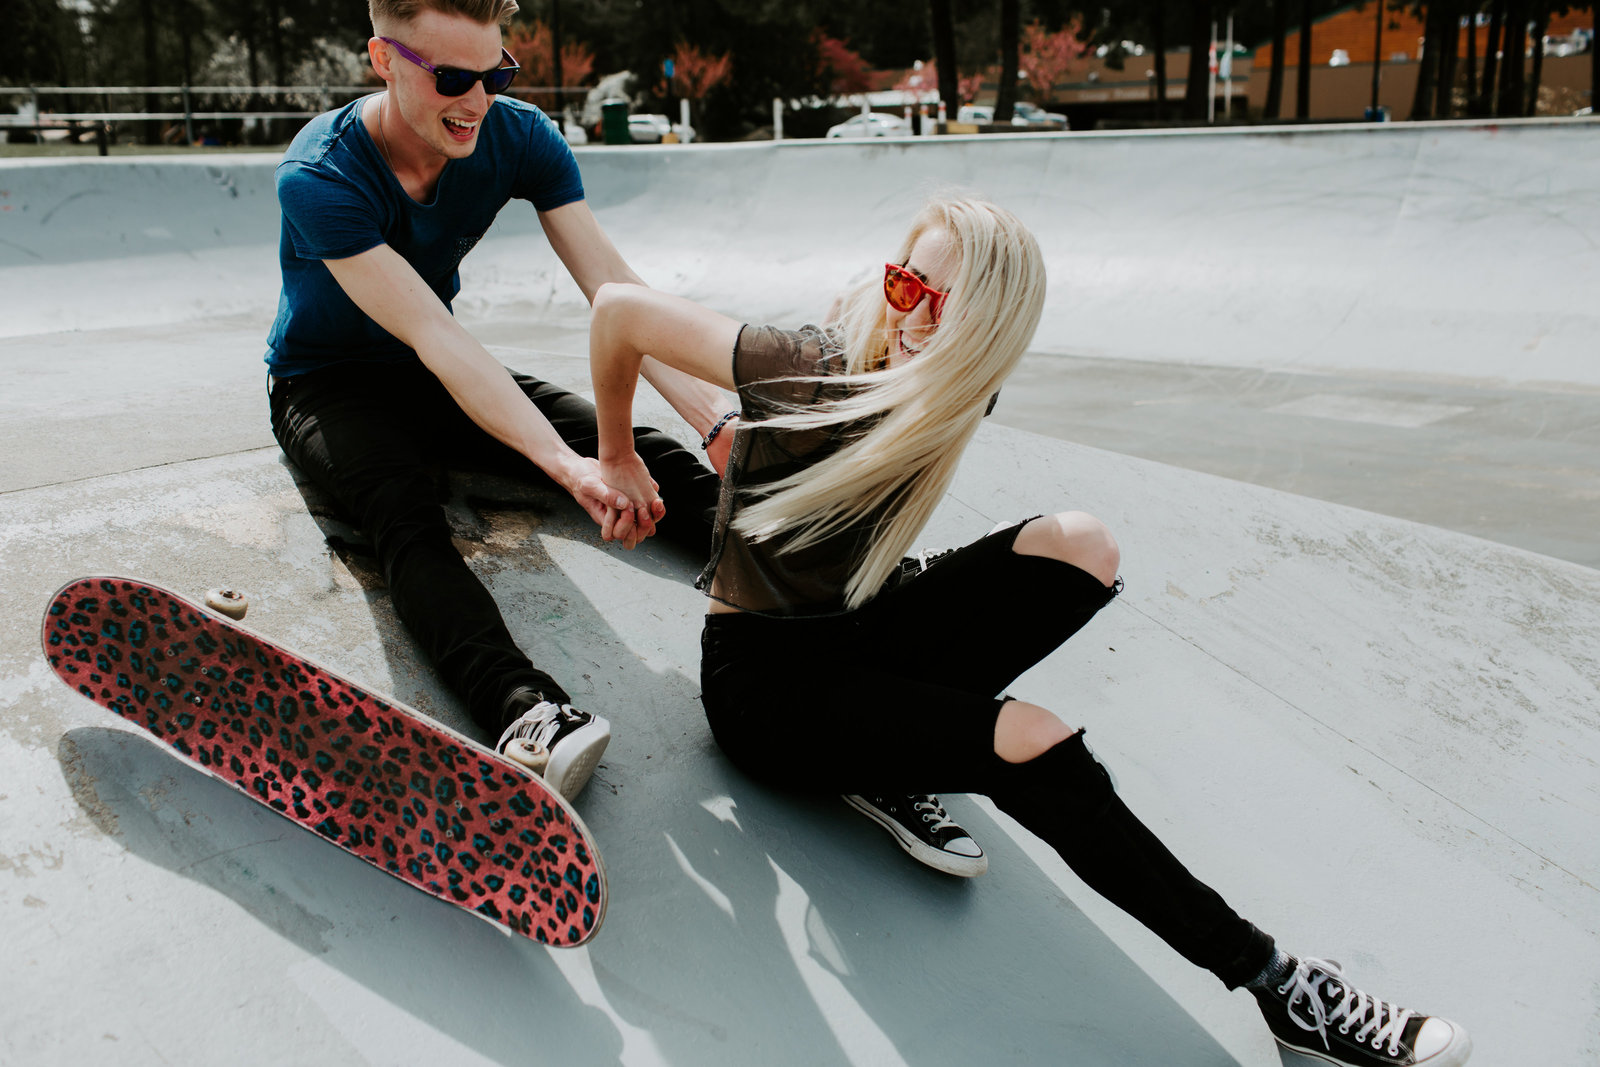 SKATE-PARK-ENGAGEMENT-MEGHAN-HEMSTRA-PHOTOGRAPHY-4